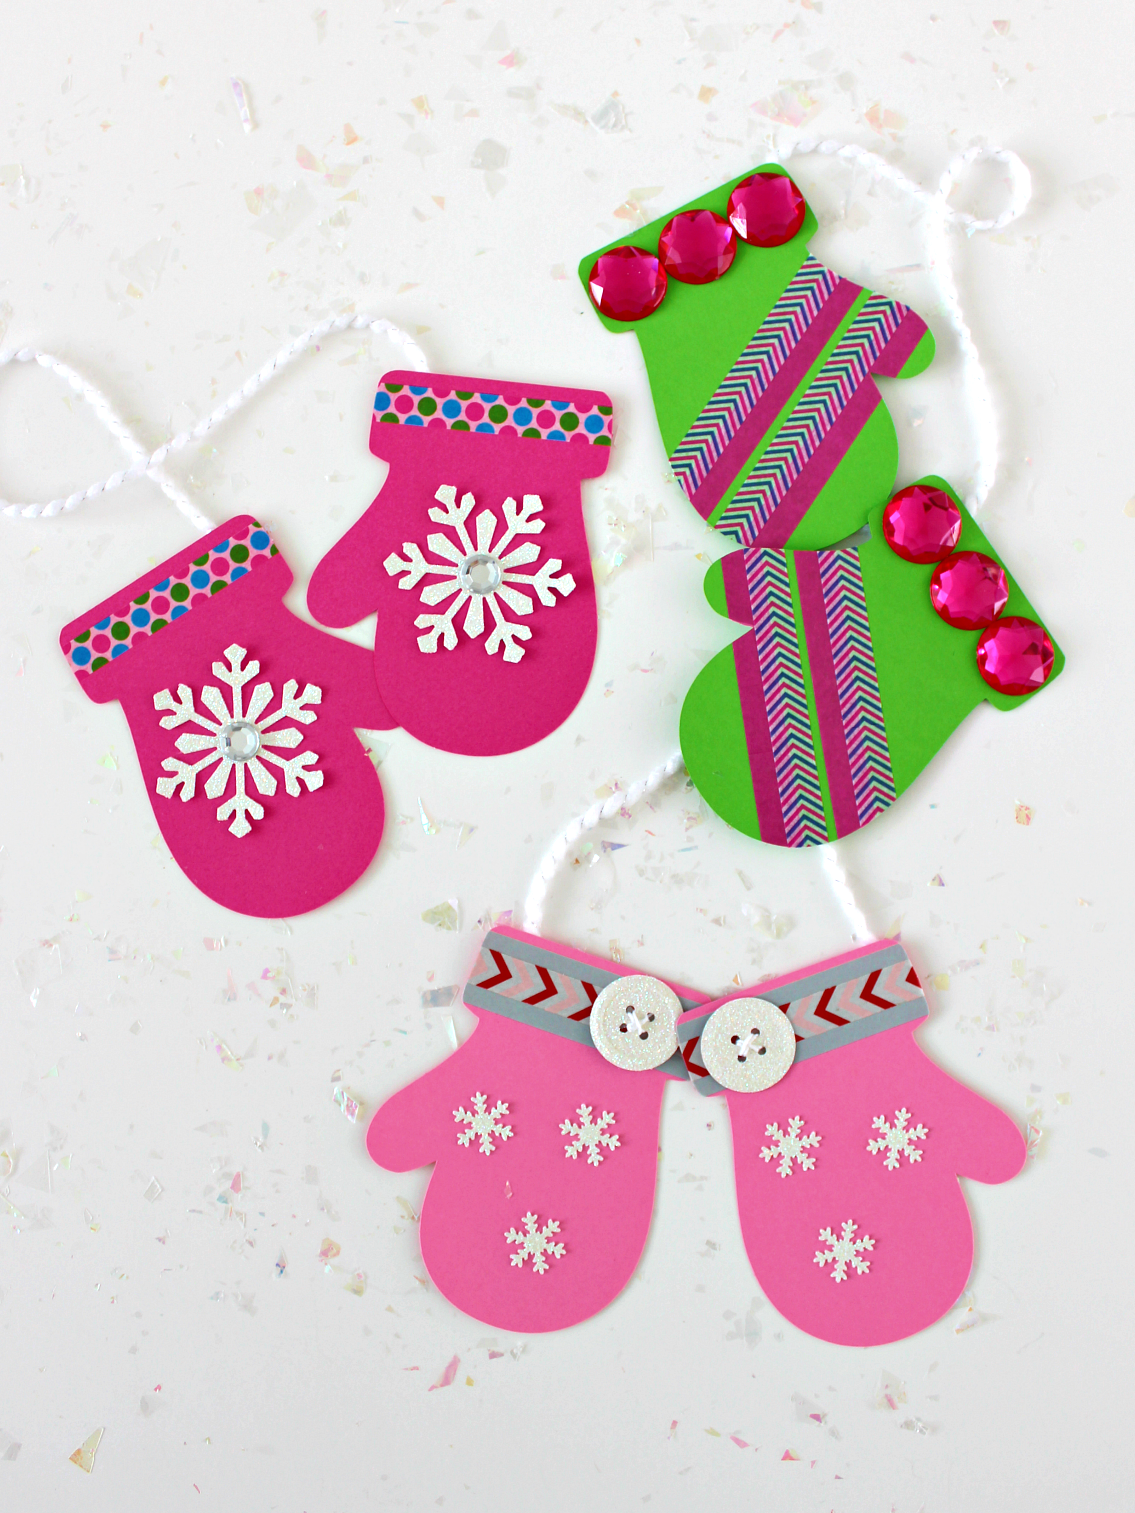 DECORATED PAPER MITTENS (WITH FREE TEMPLATE)